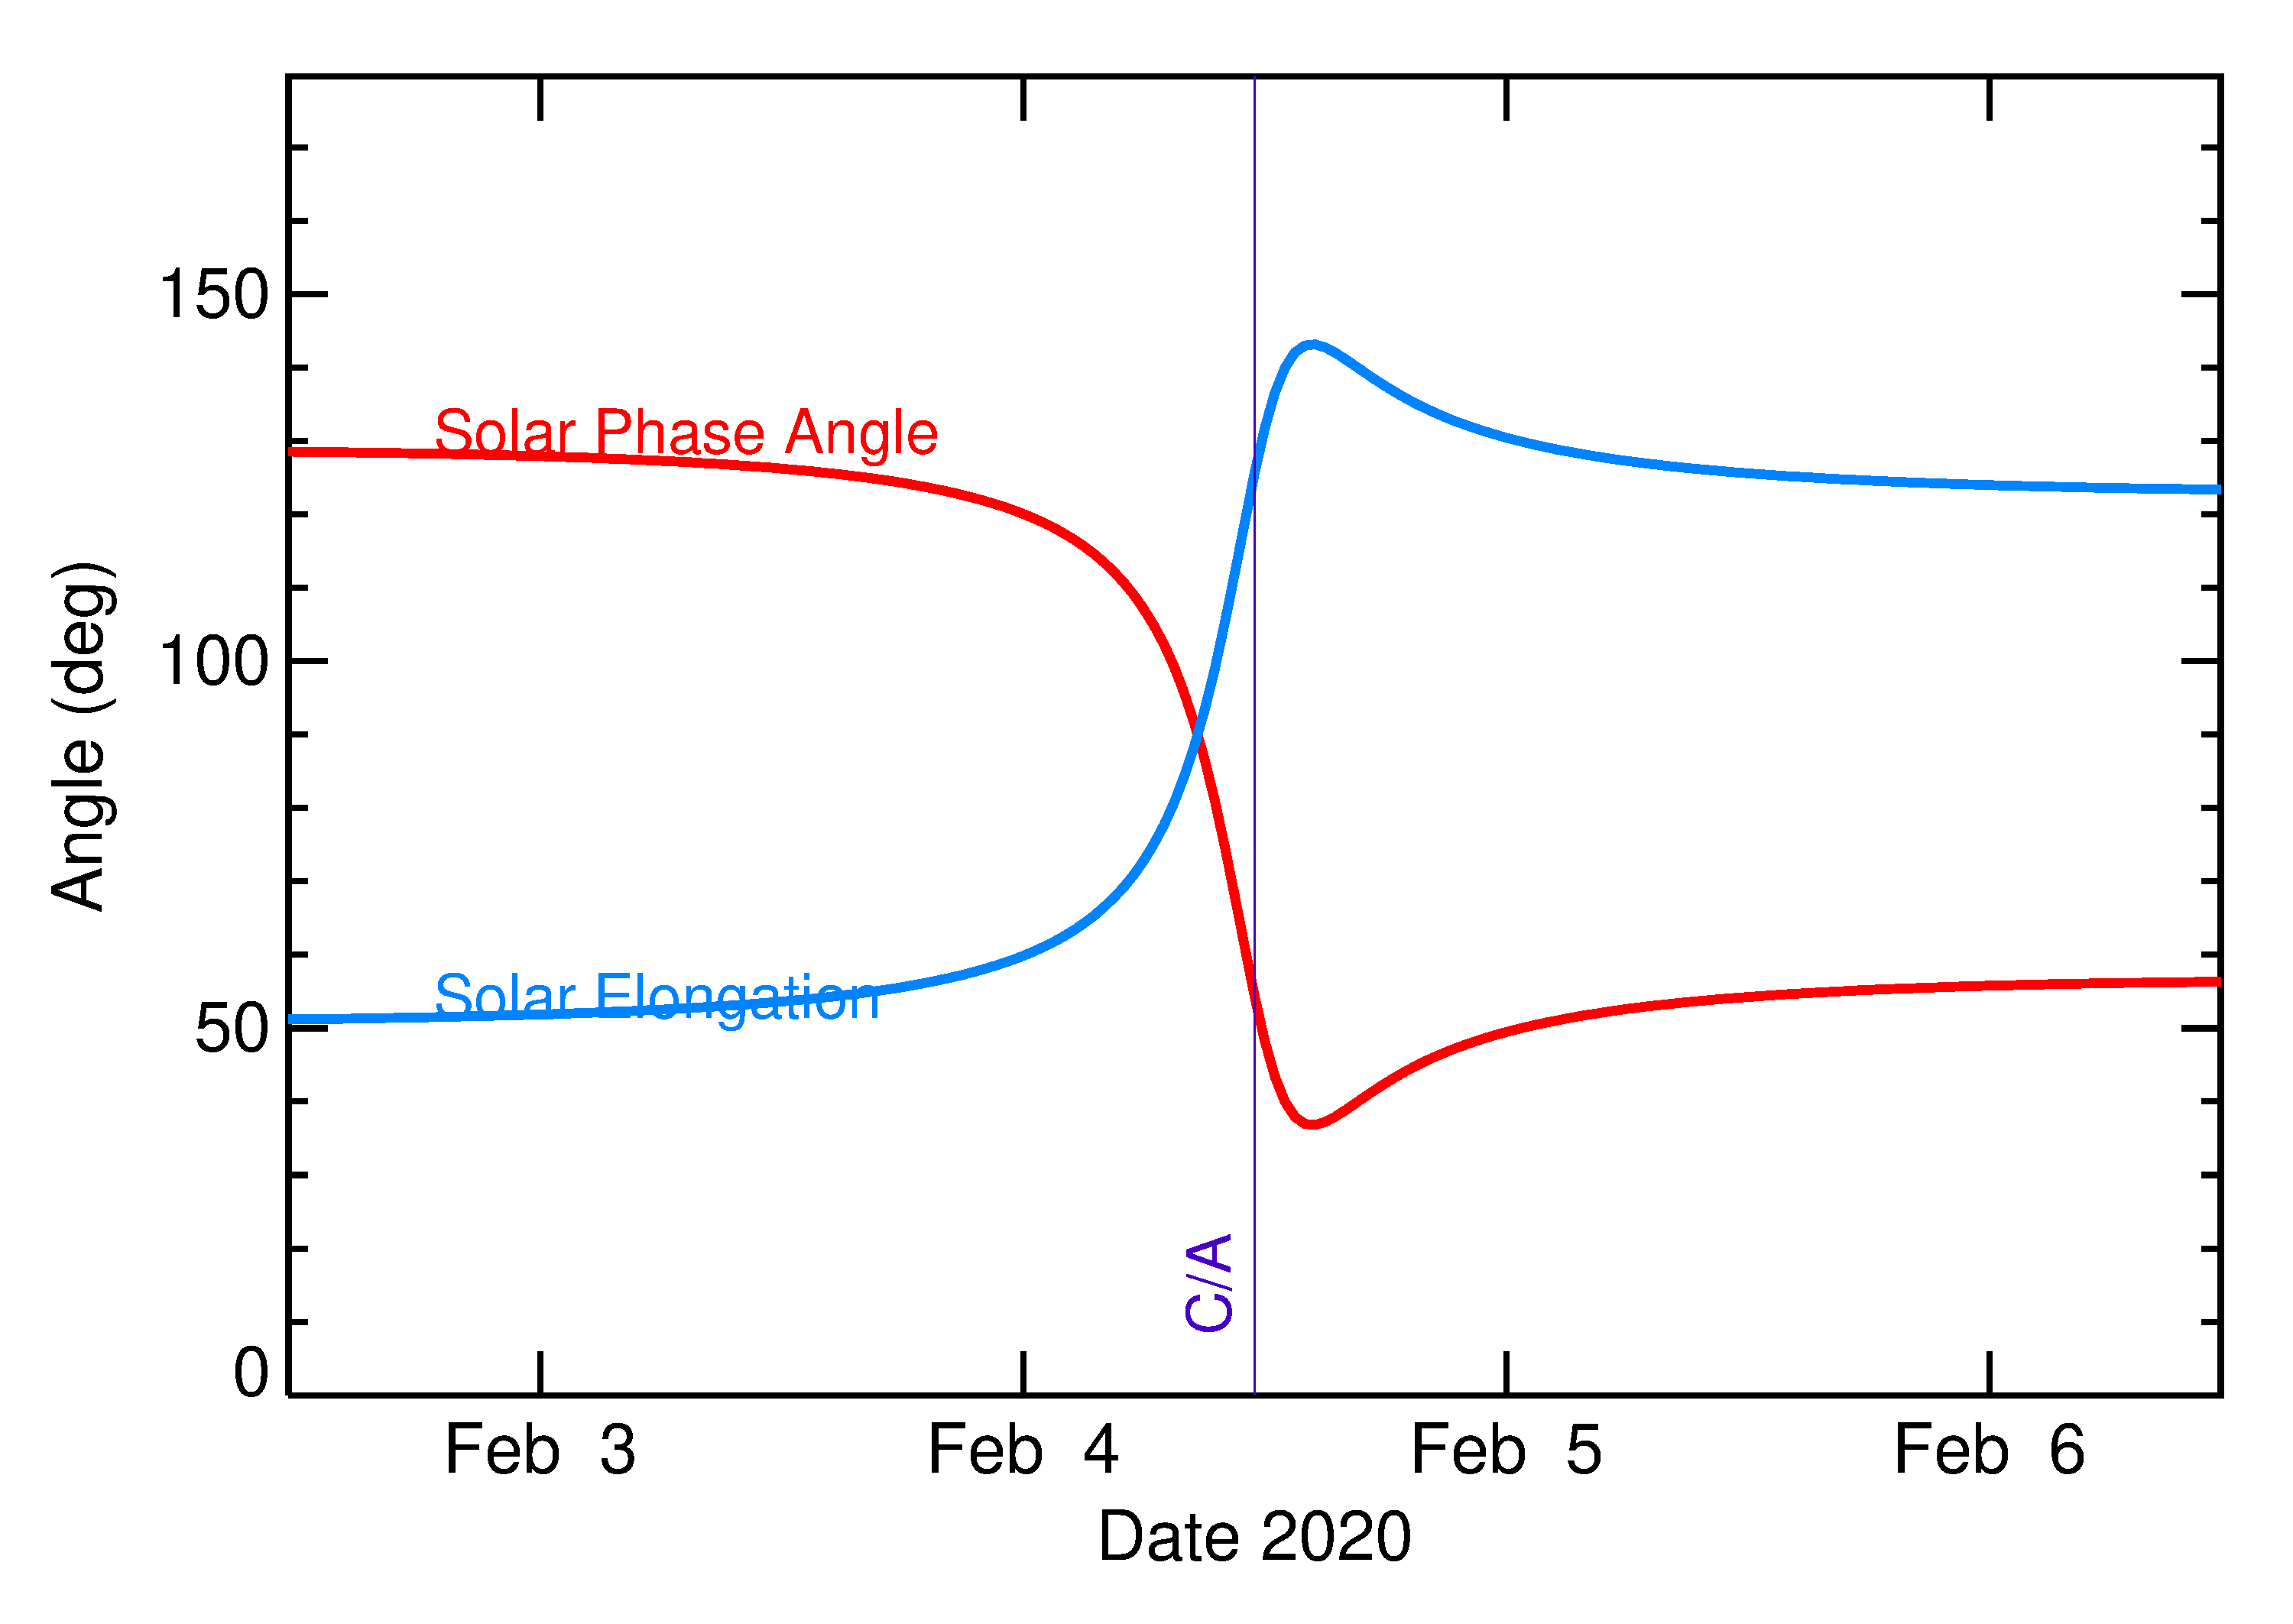 Solar Elongation and Solar Phase Angle of 2020 CQ1 in the days around closest approach